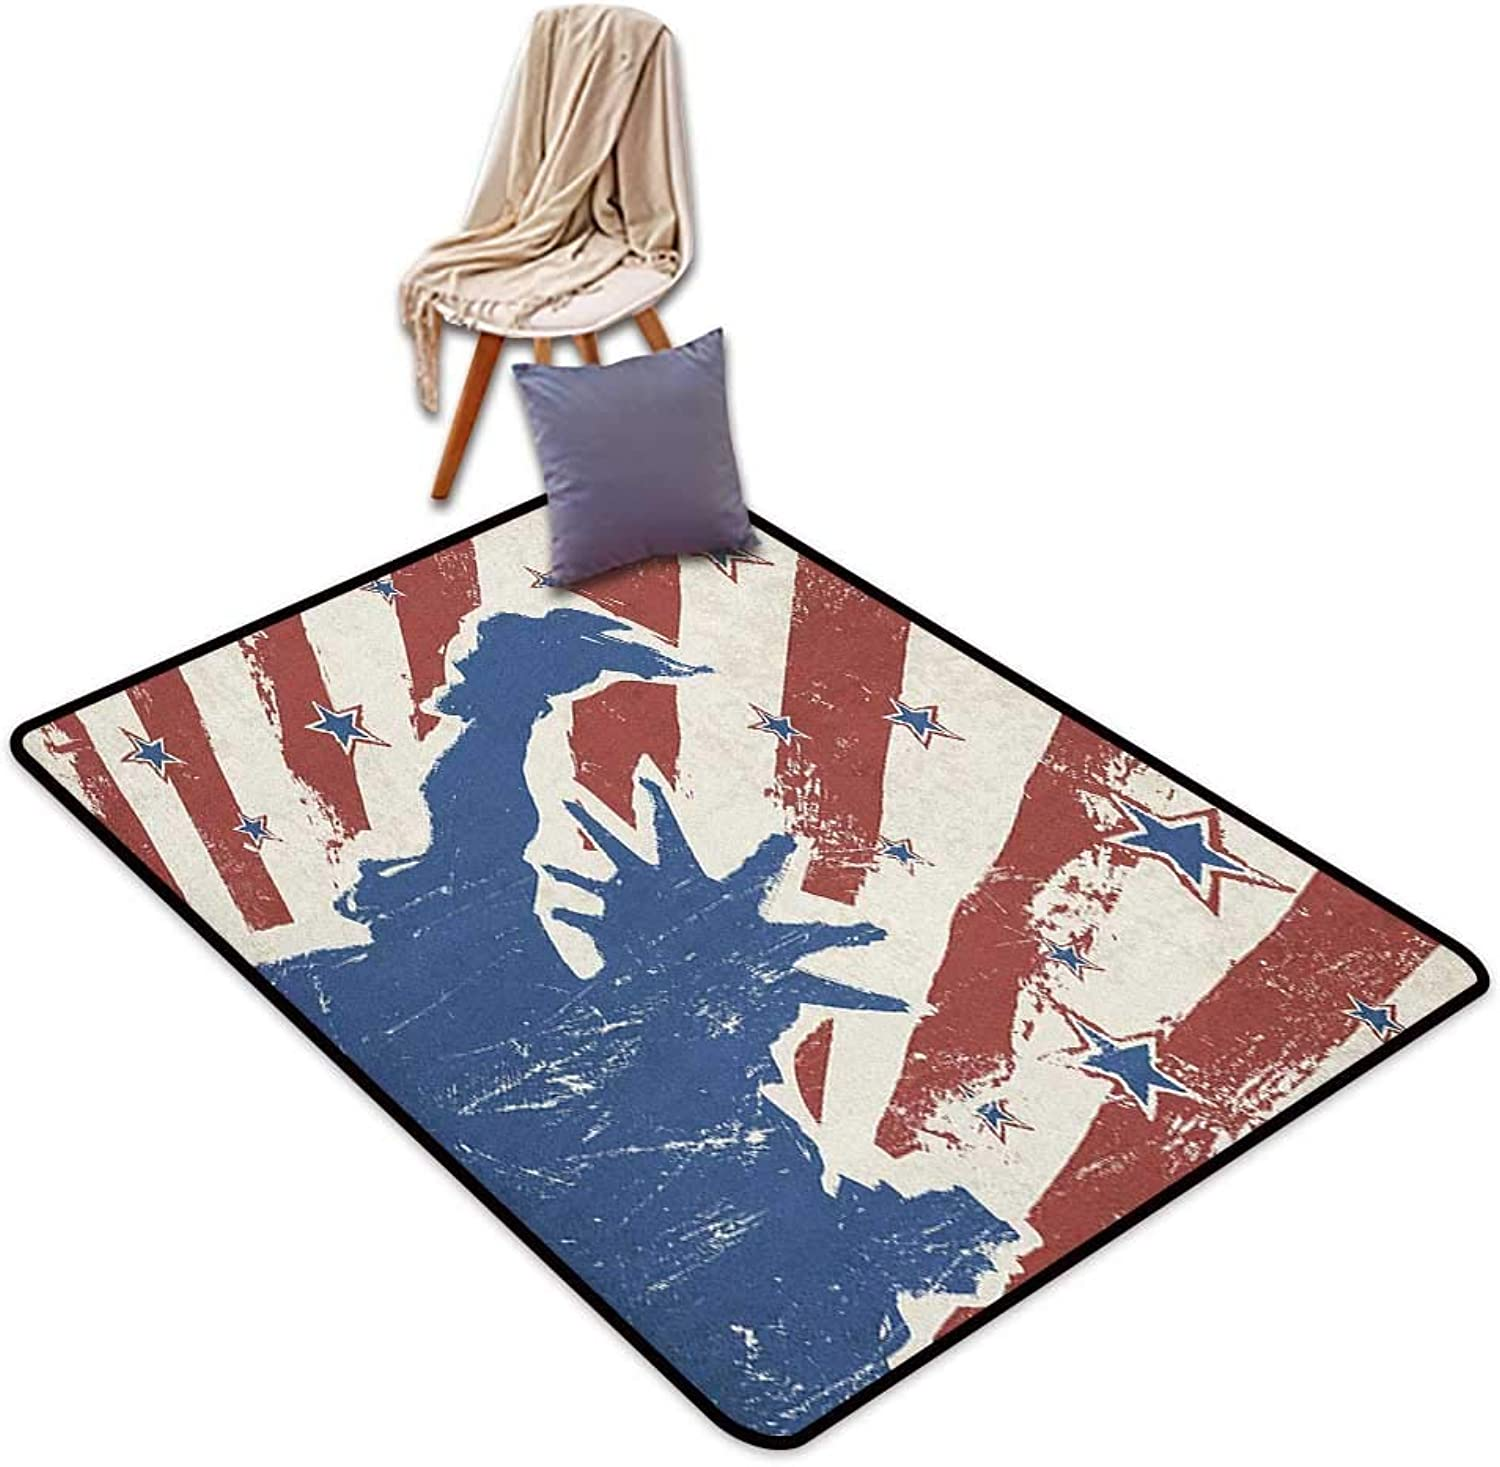 Interior Door Rug Bathroom Rug Slip 4th of July Sketch Style Statue of Liberty with Grunge Stripes and Stars Pattern Inner Door Rug W6'xL7'